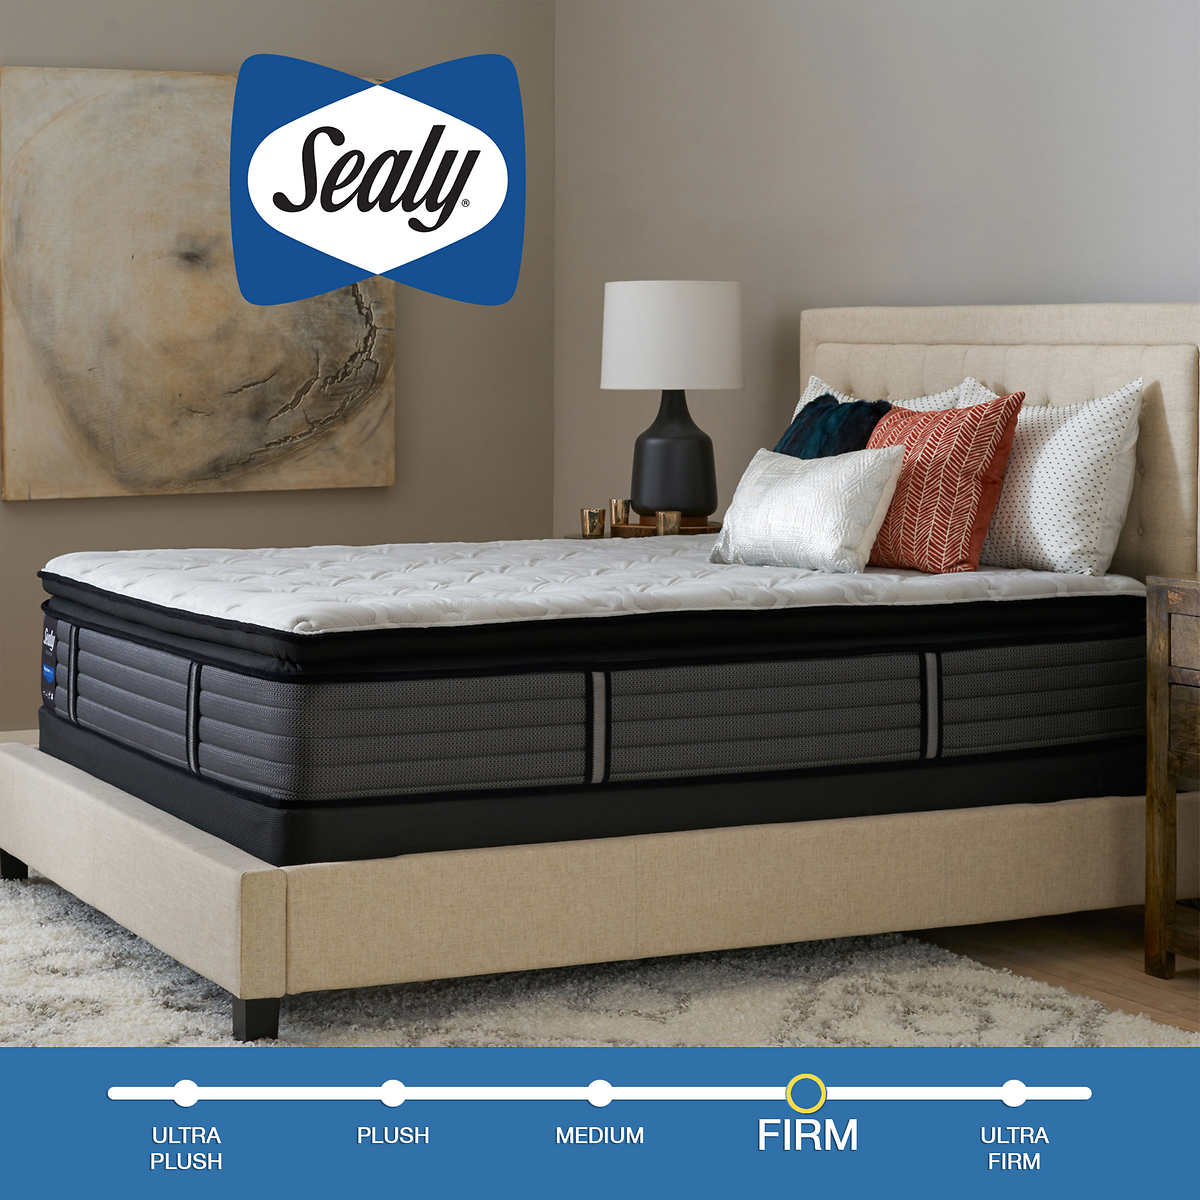 Sealy Response Premium Ridge Crest Firm King Mattress and